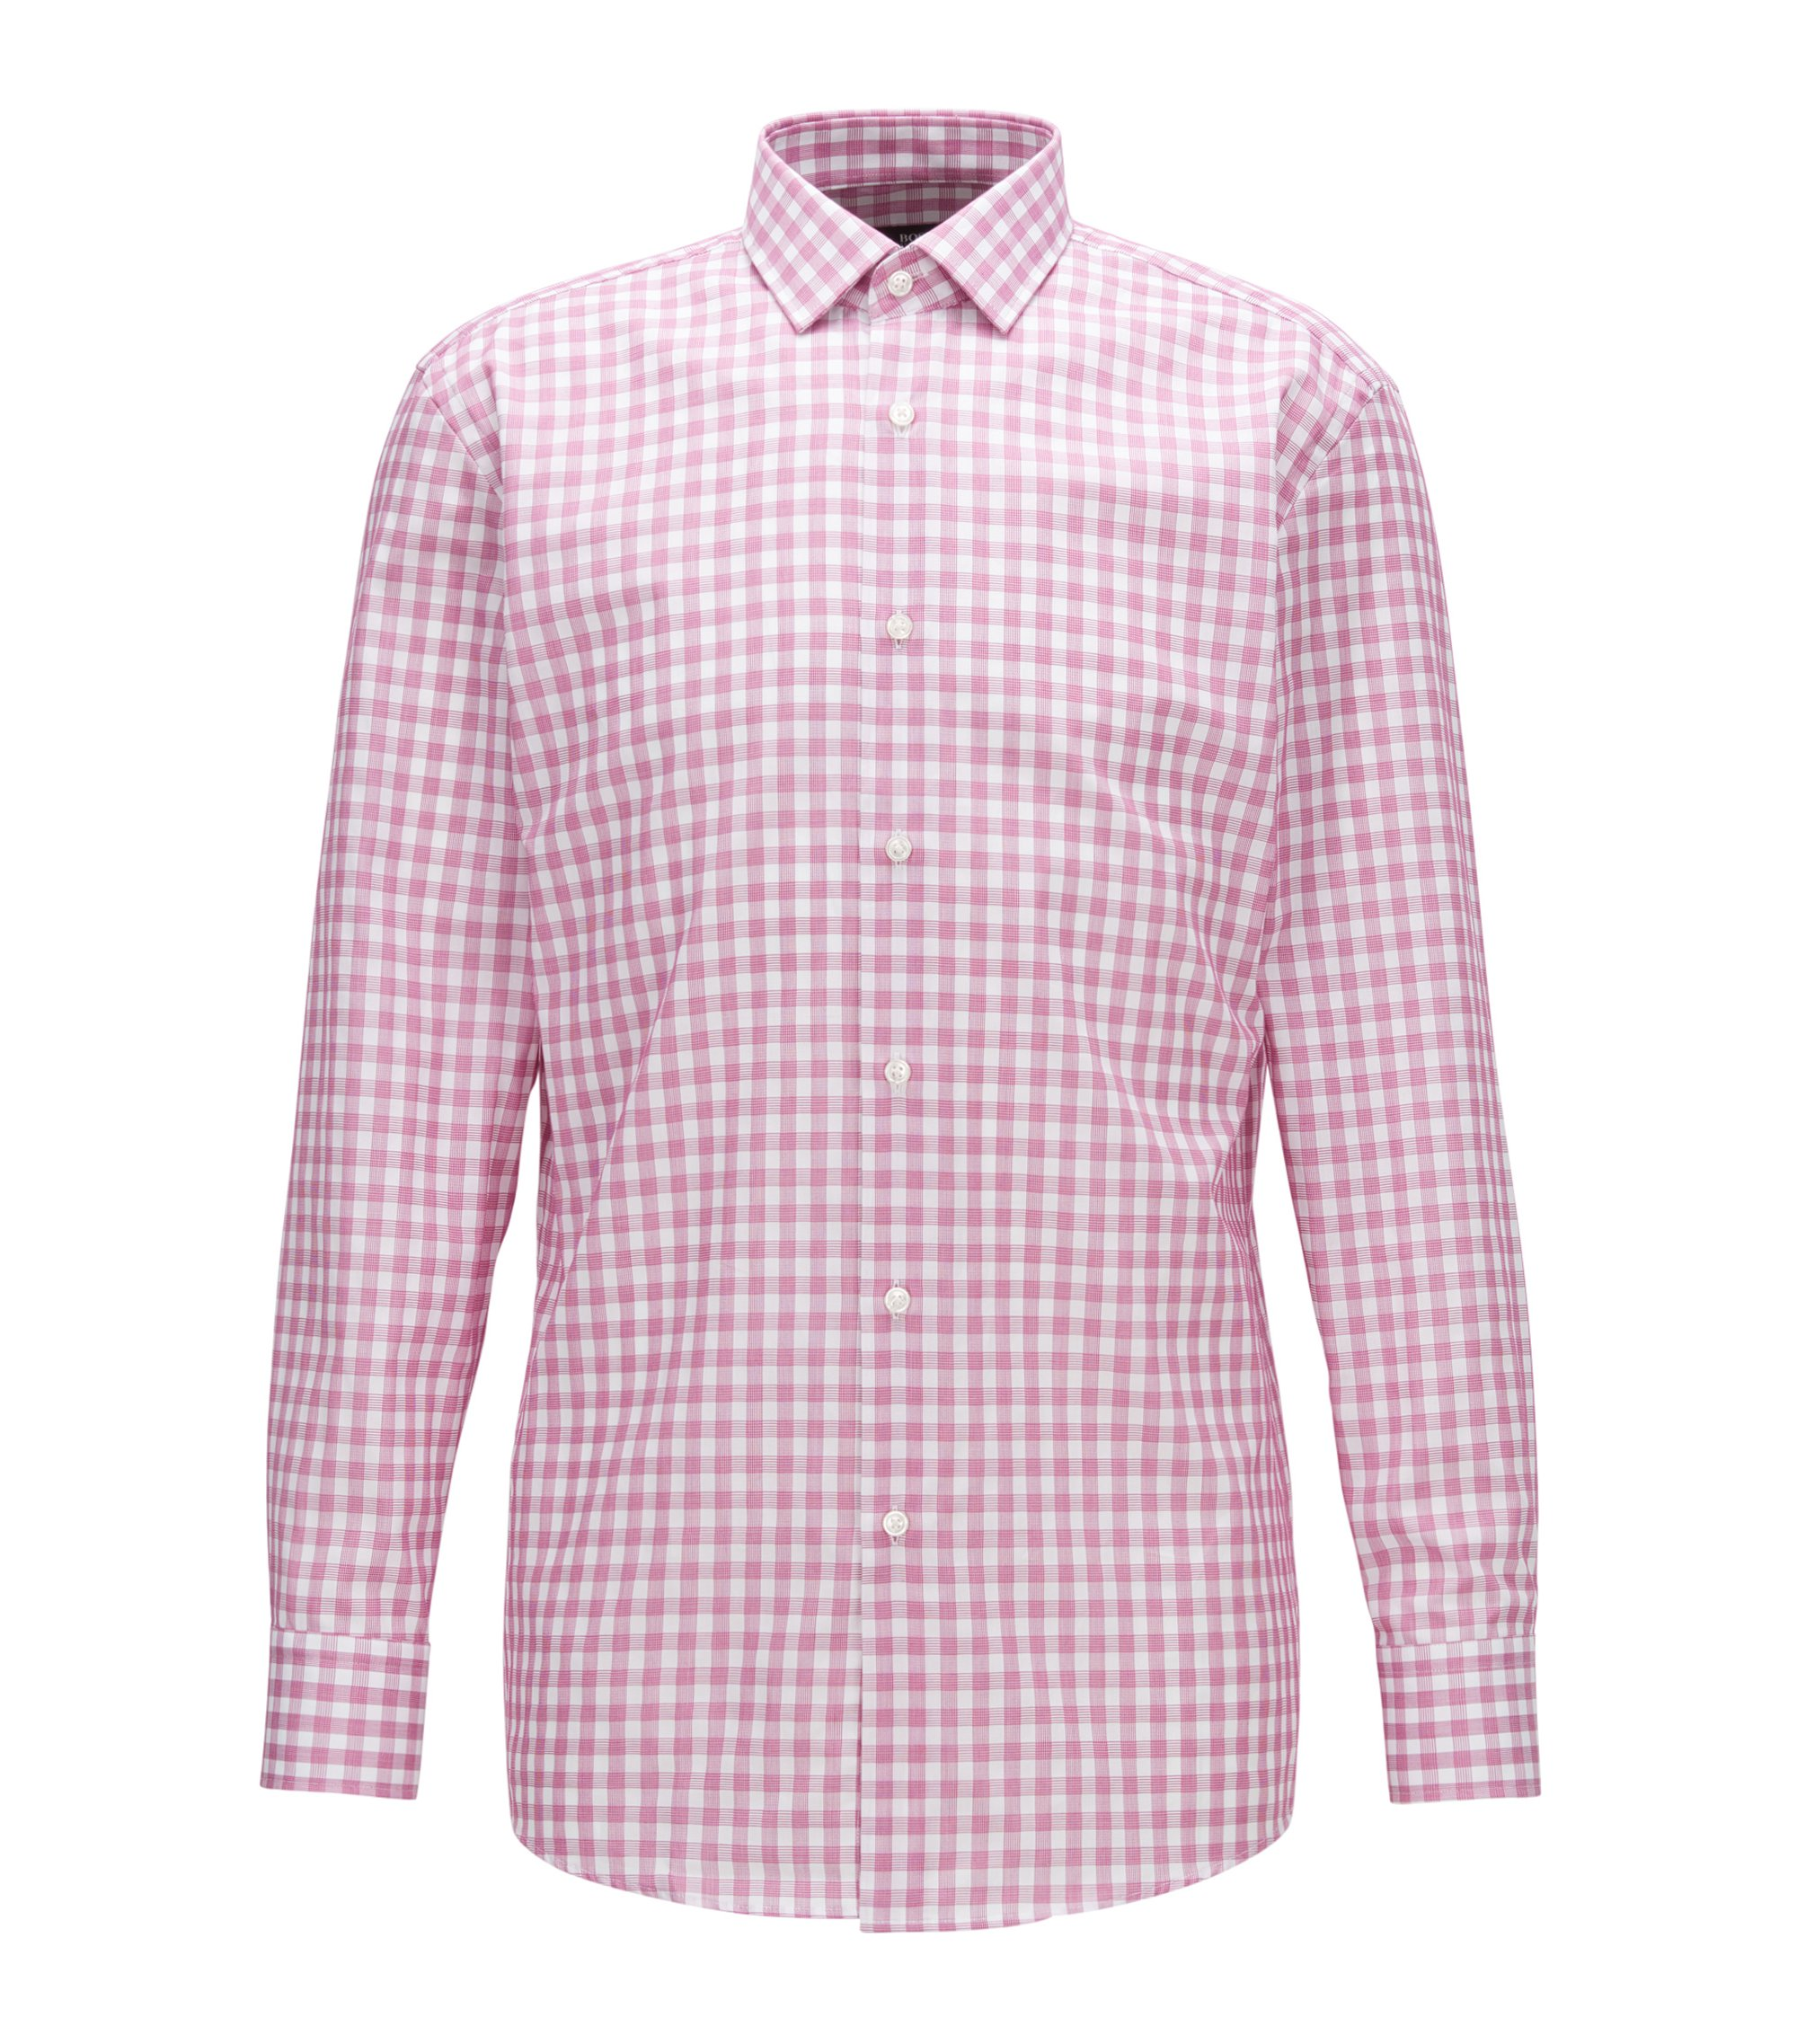 Checked Cotton Dress Shirt, Sharp Fit | Marley US, Dark pink